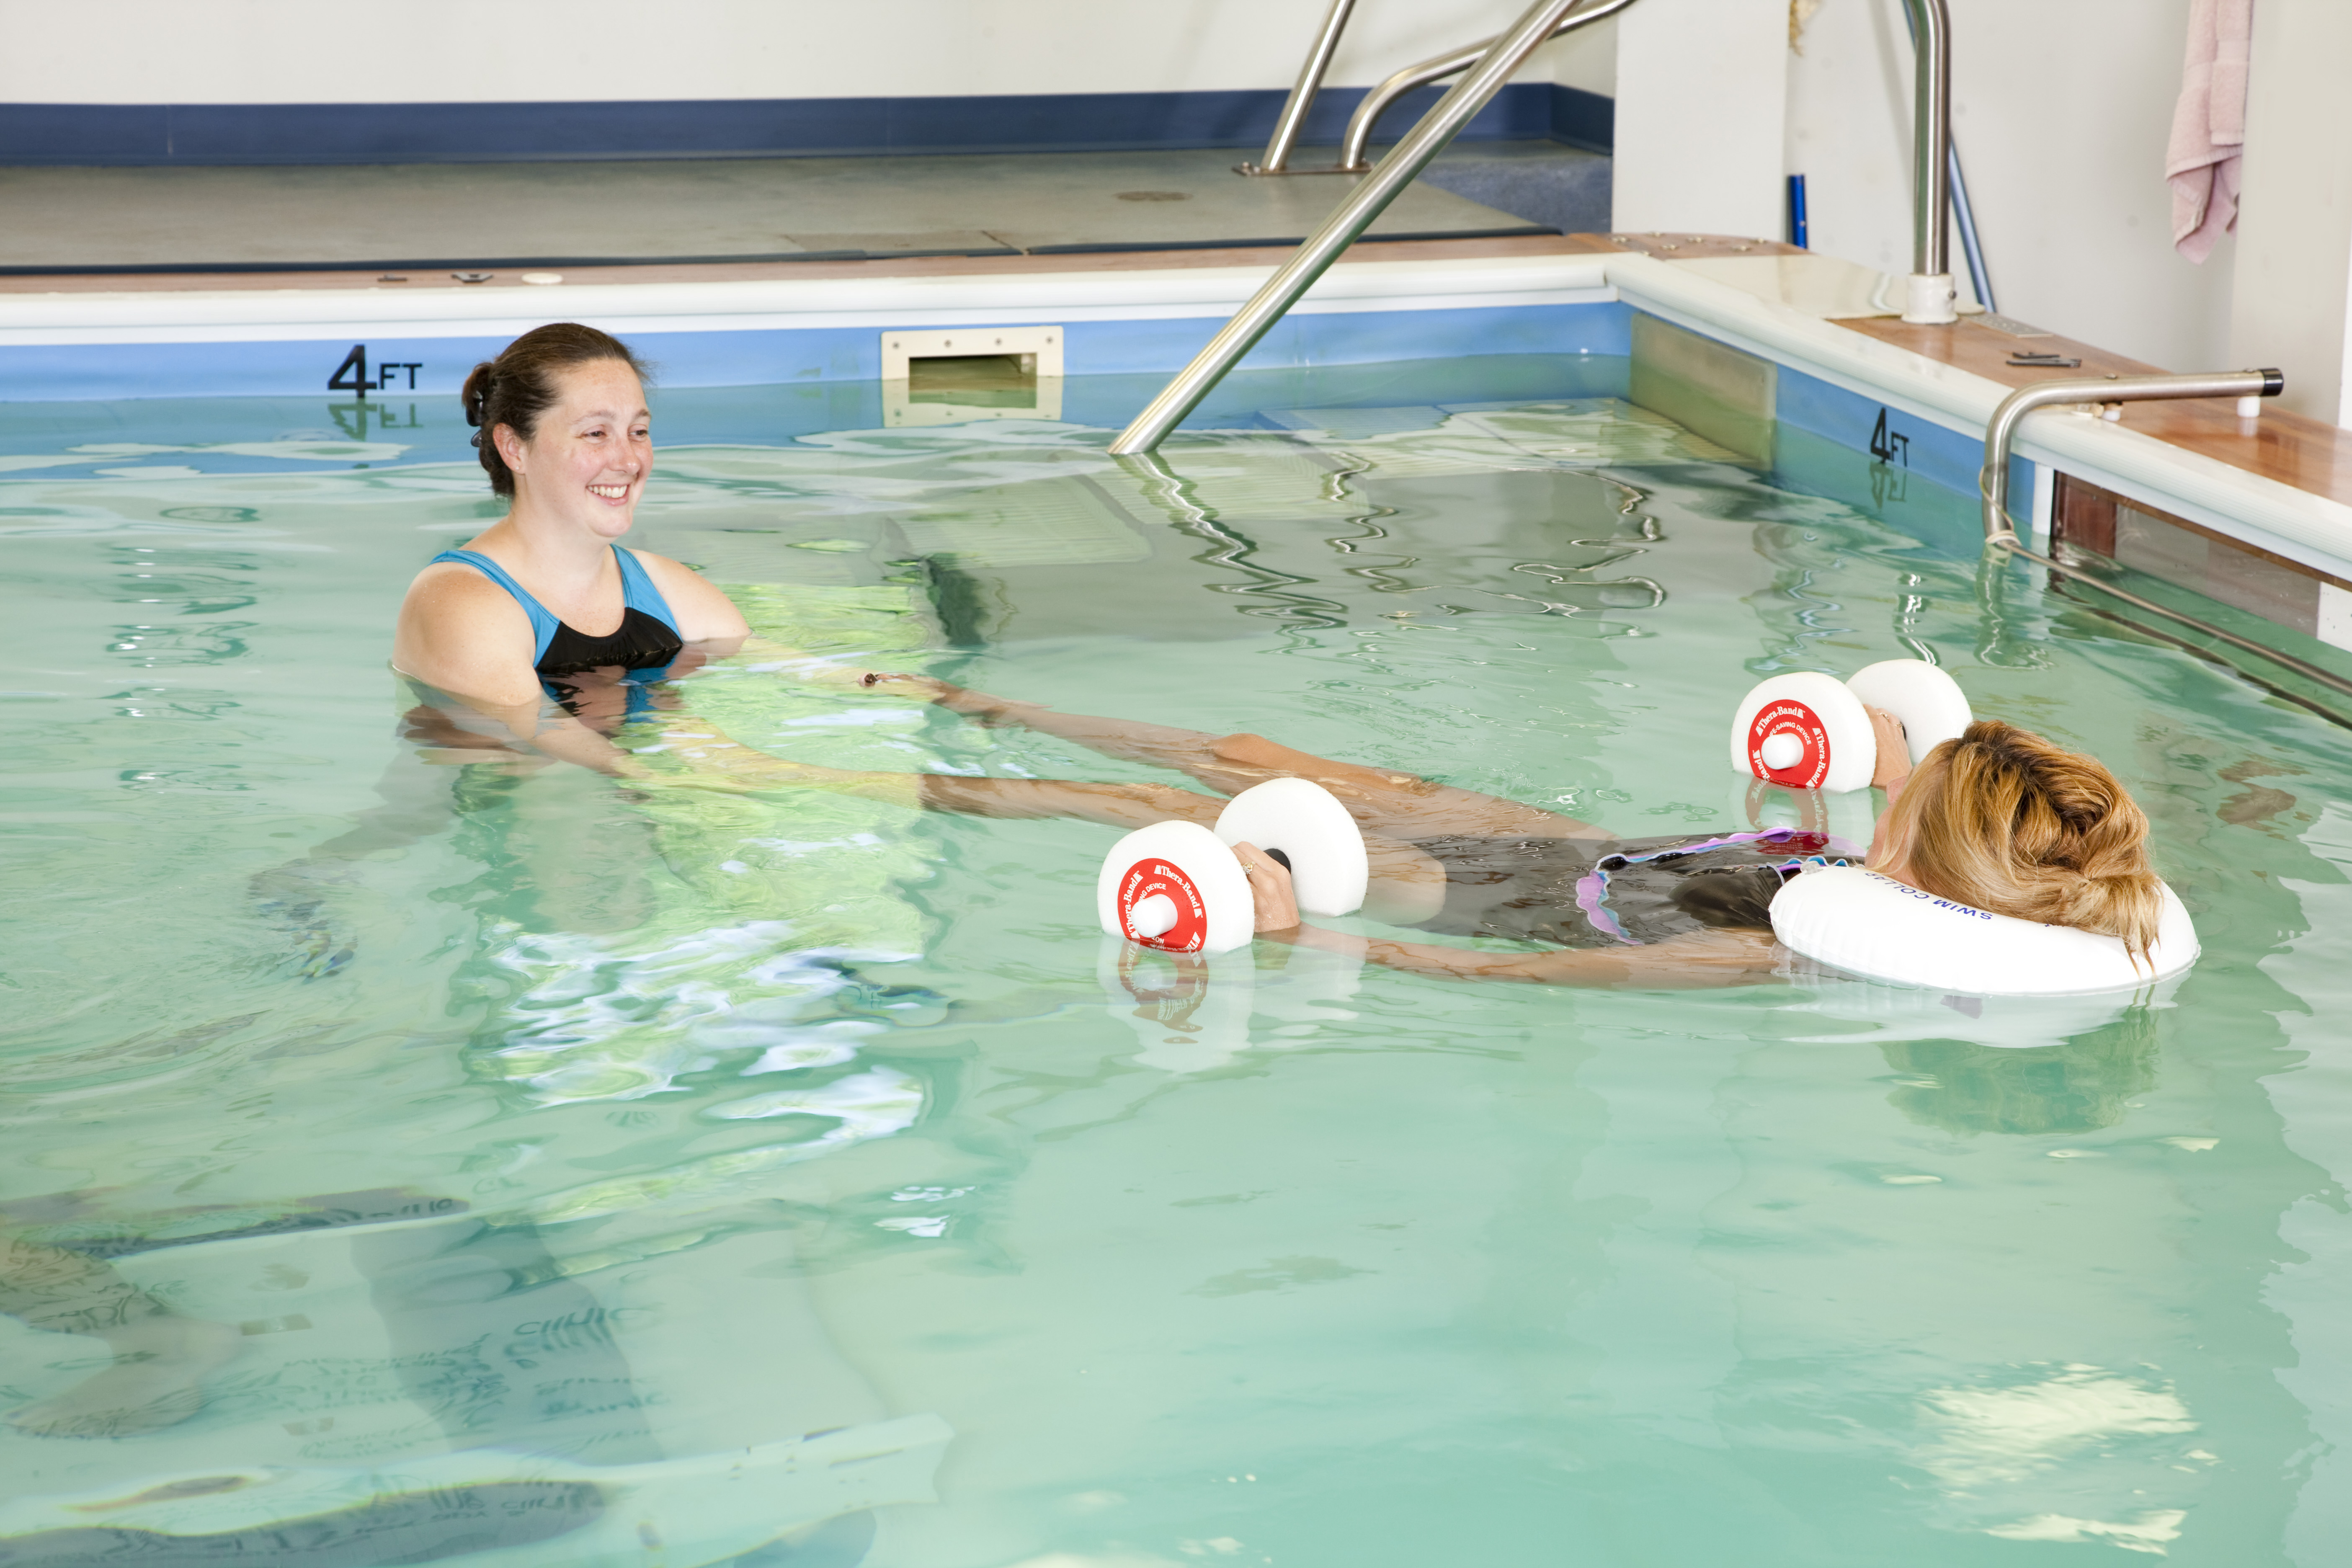 PPT-Aquatic-Therapy_11.jpg